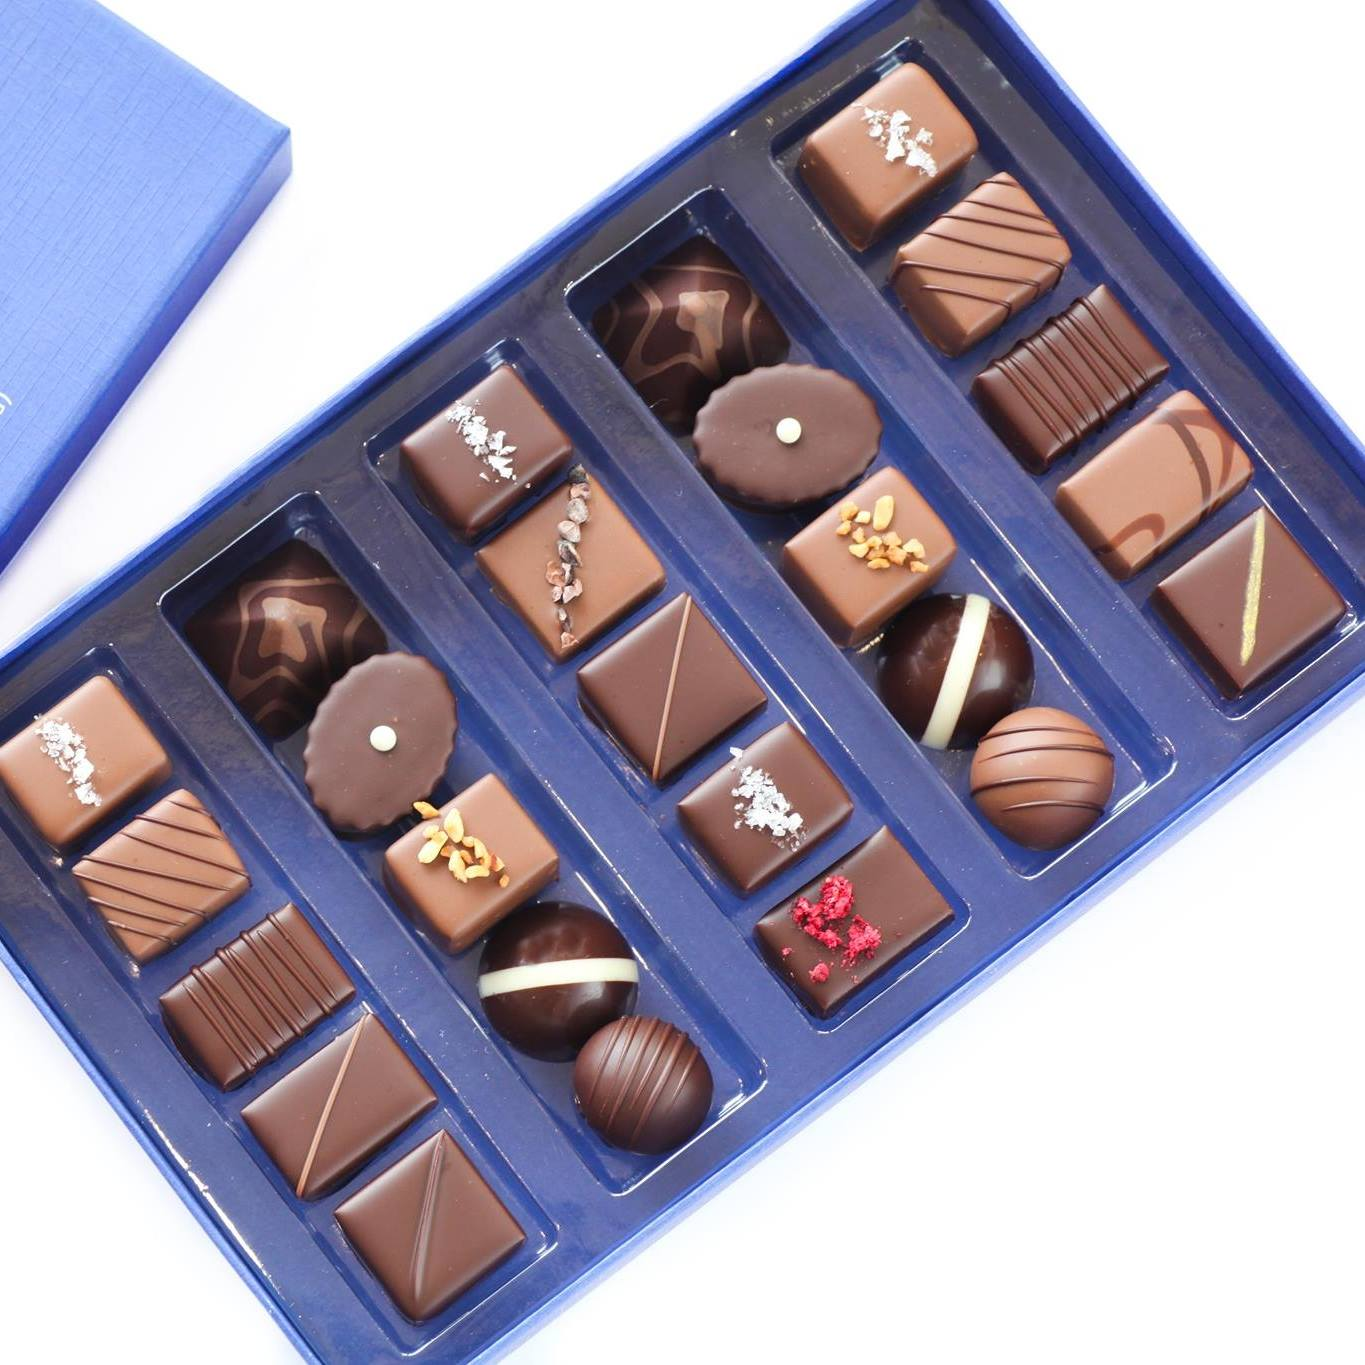 Gift box from Chocolaterie Tessa